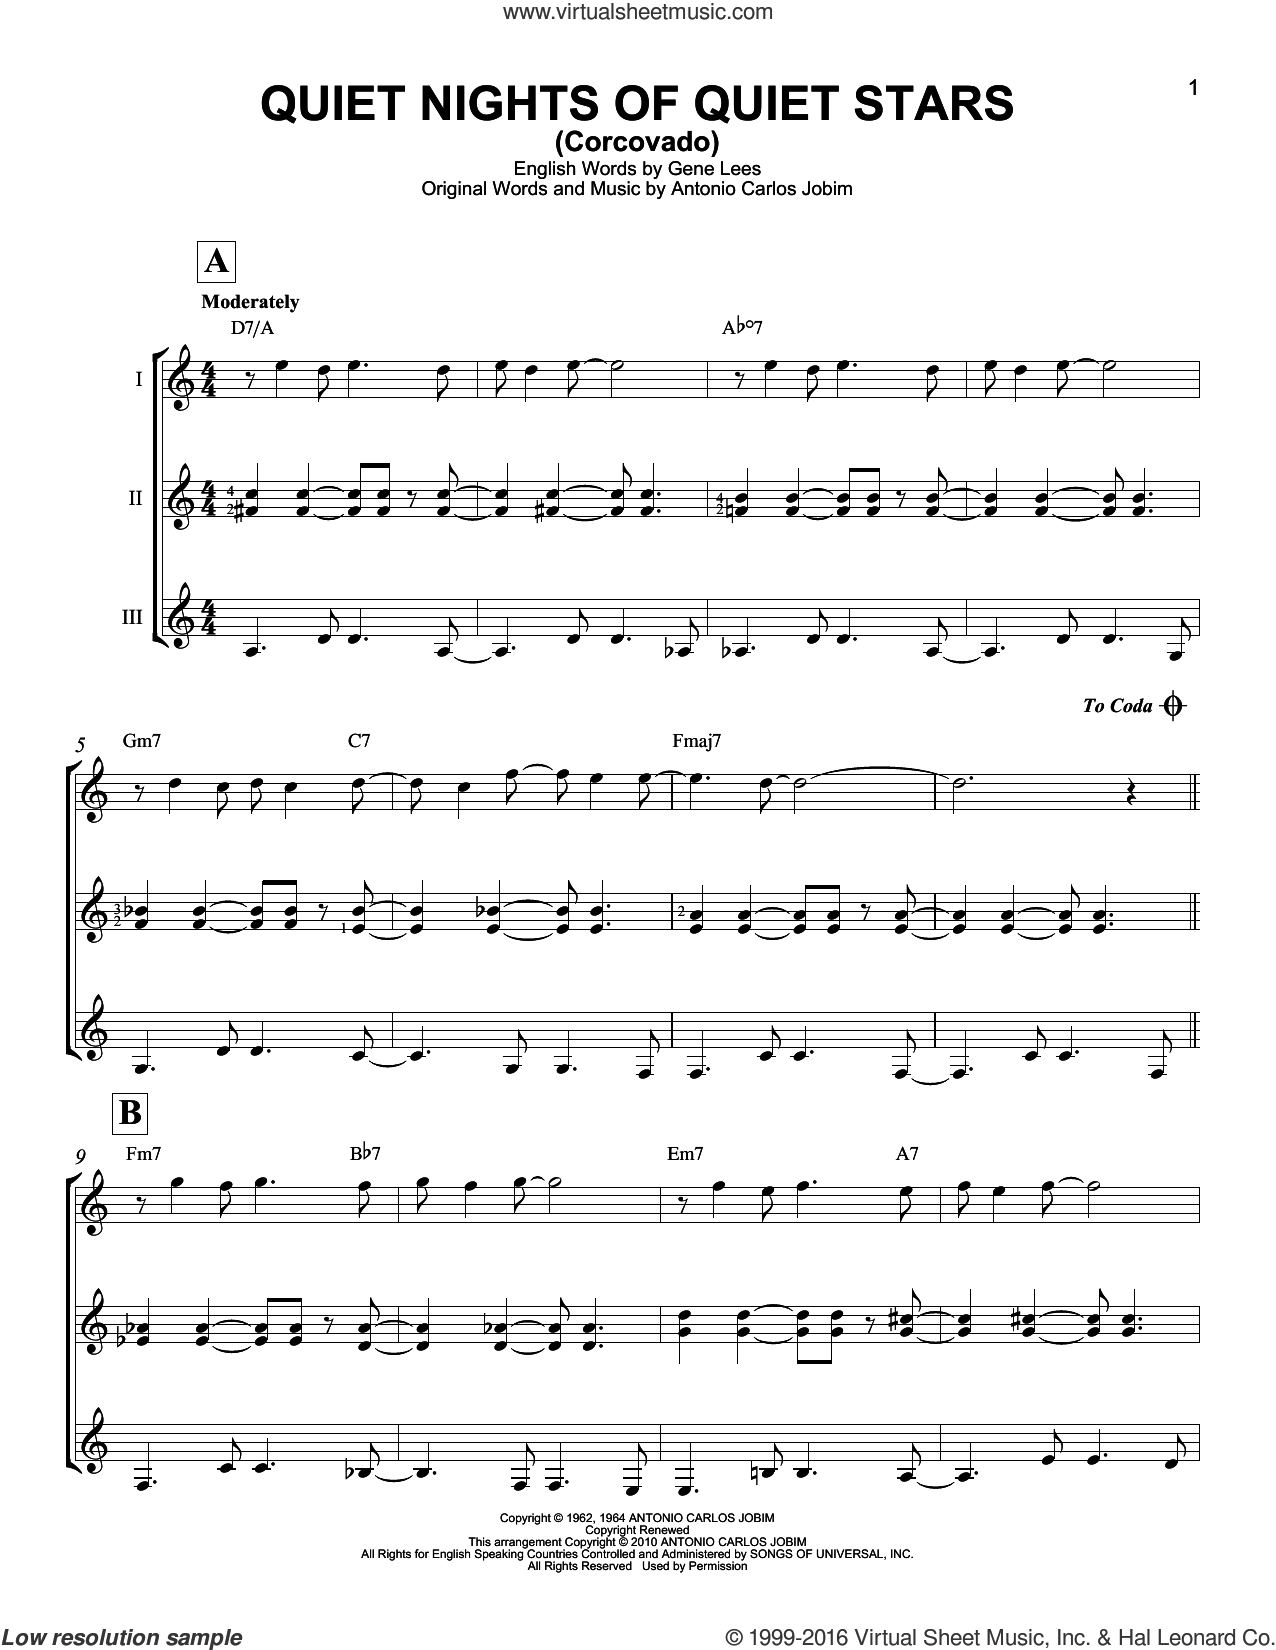 Quiet Nights Of Quiet Stars (Corcovado) sheet music for guitar ensemble by Eugene John Lees, Andy Williams and Antonio Carlos Jobim. Score Image Preview.